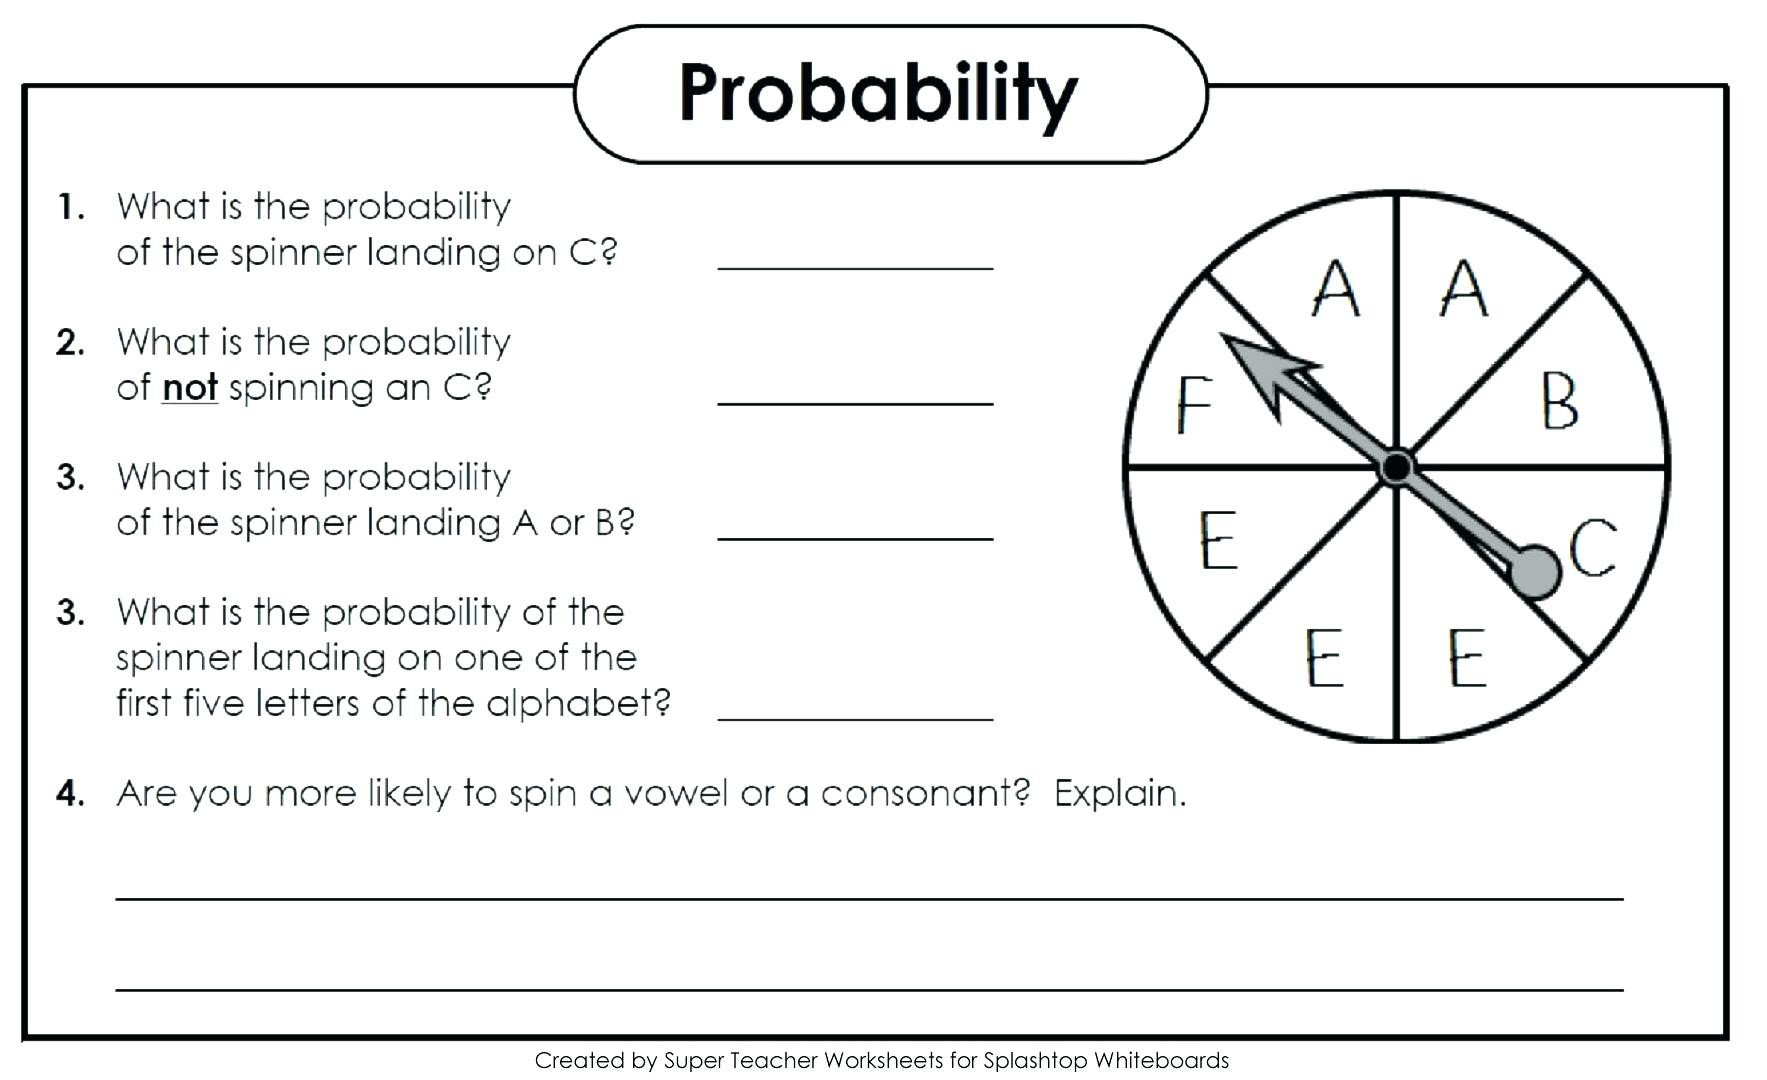 Probability Worksheets 7th Grade Pdf Probability Practice Problems – Leahaliub